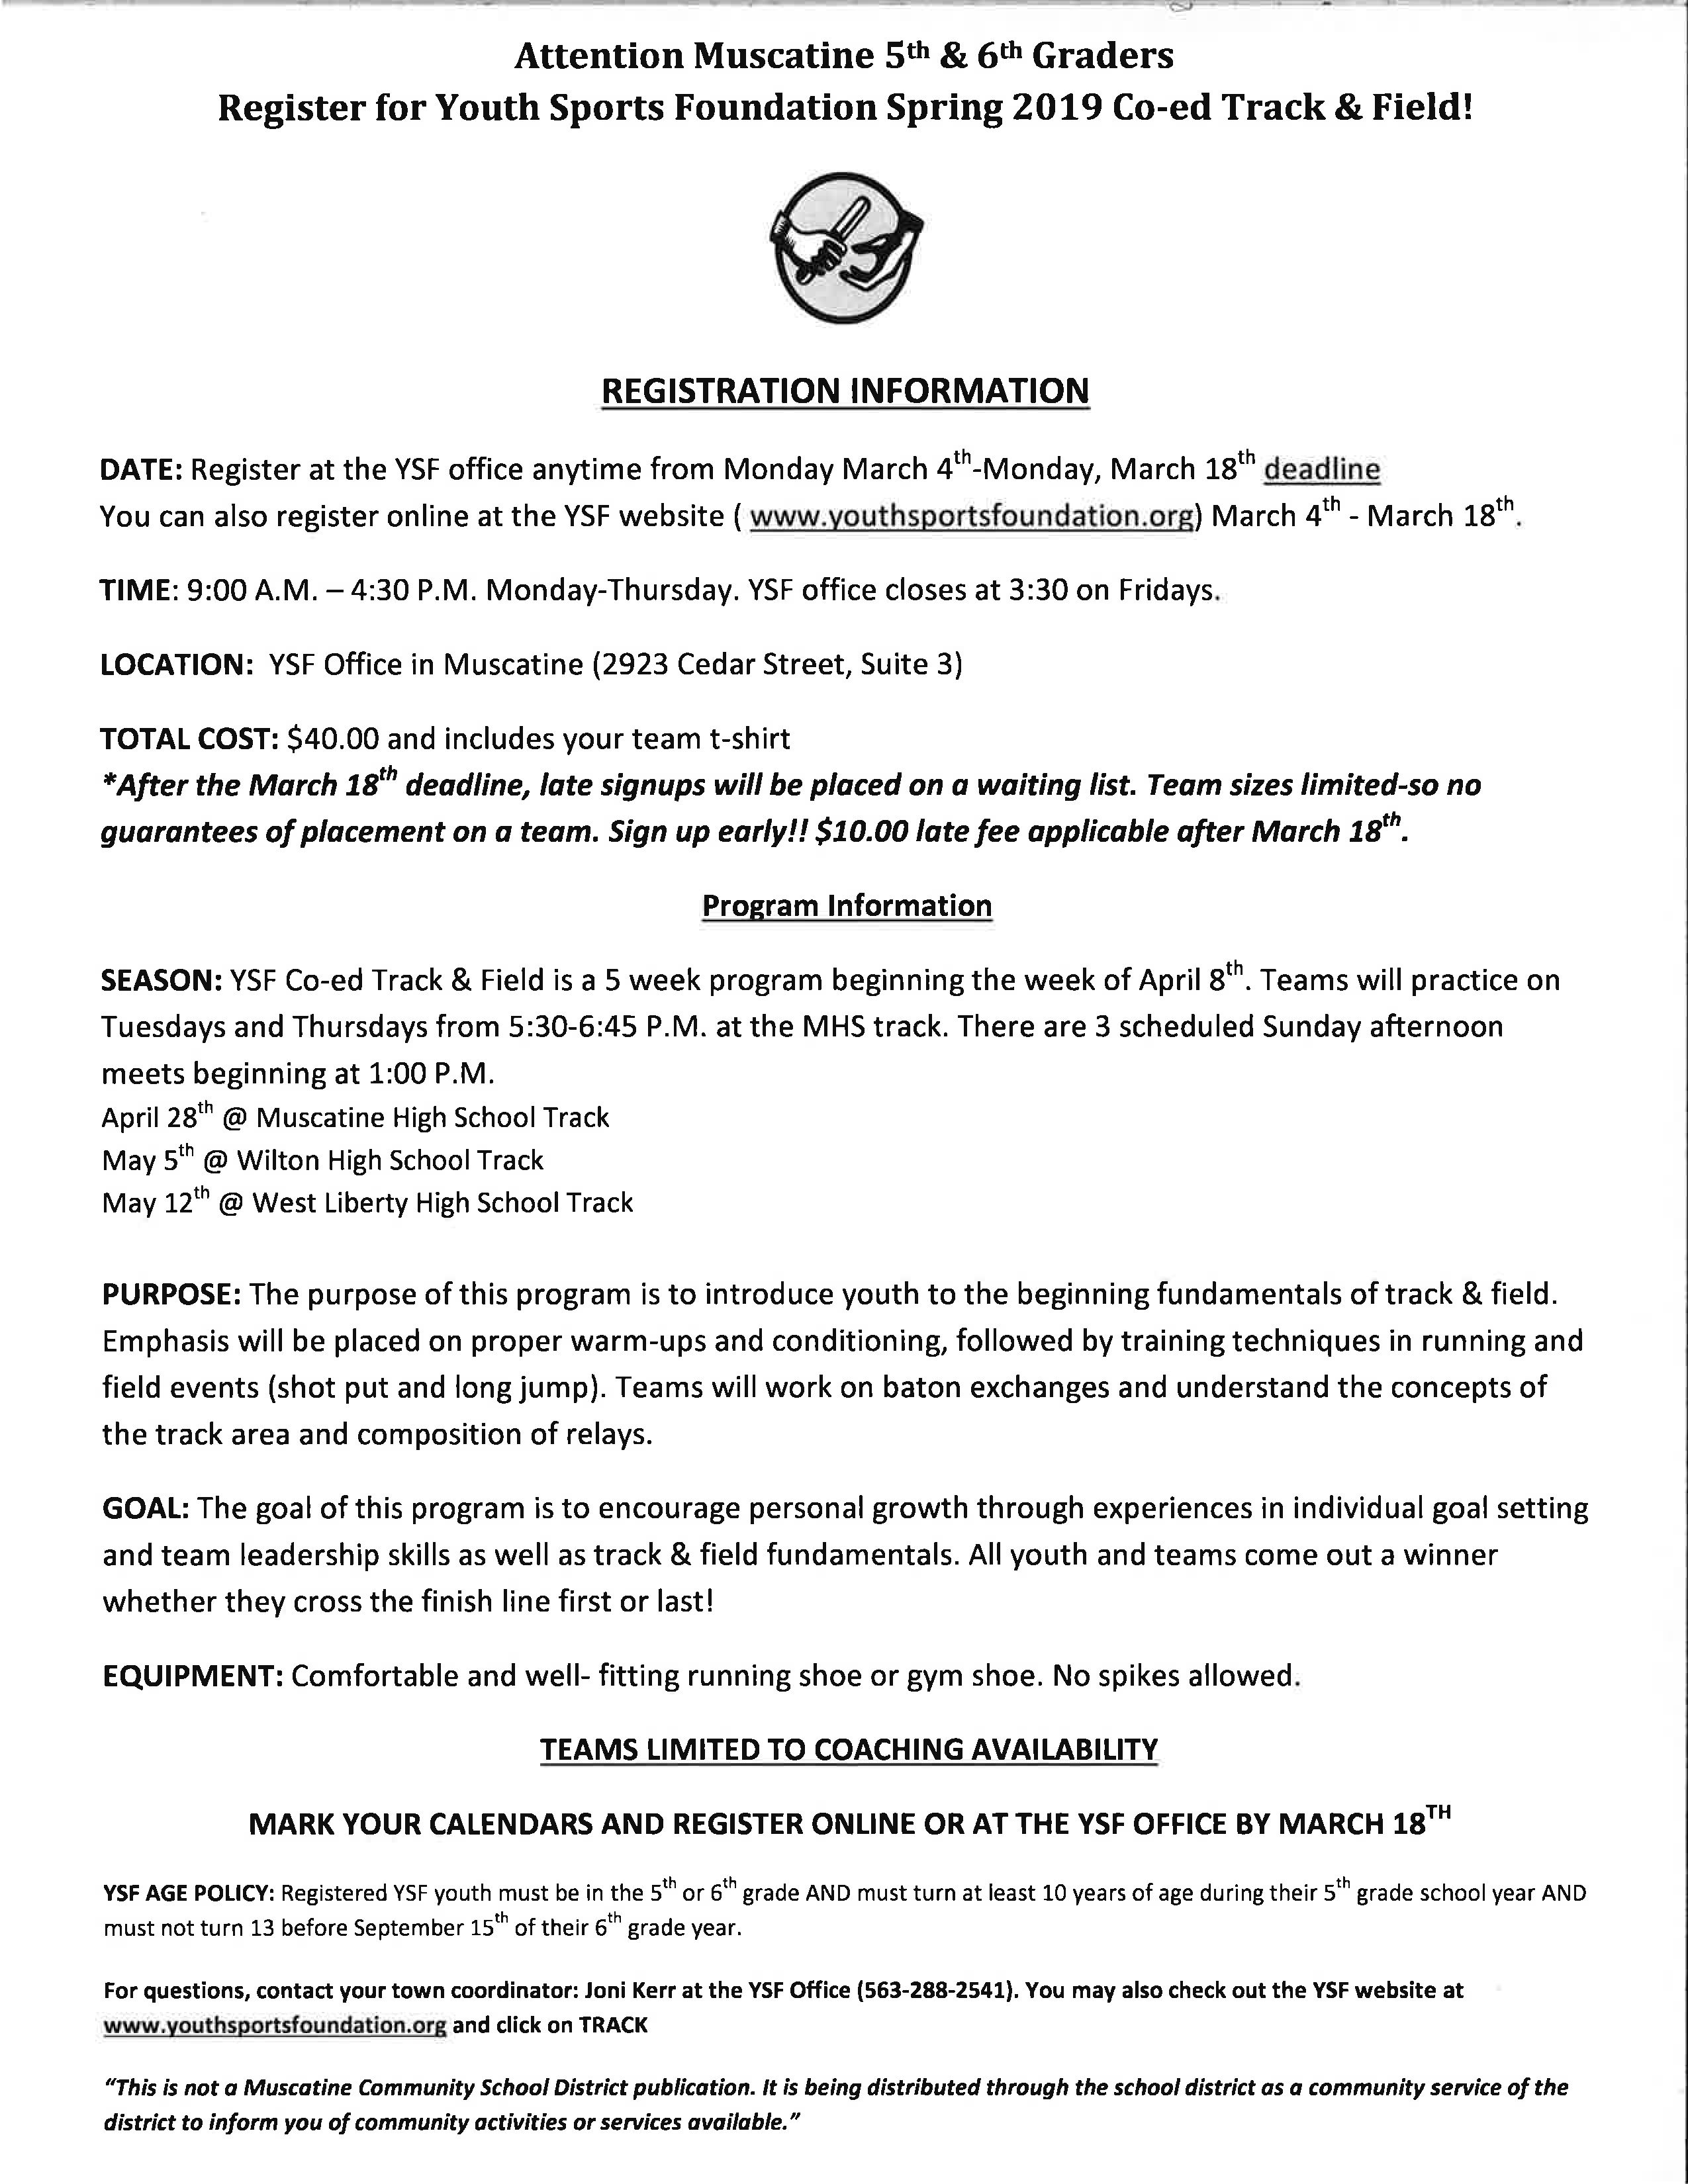 Youth Sports Foundations 5th & 6th Grade Track and Field Sign Up